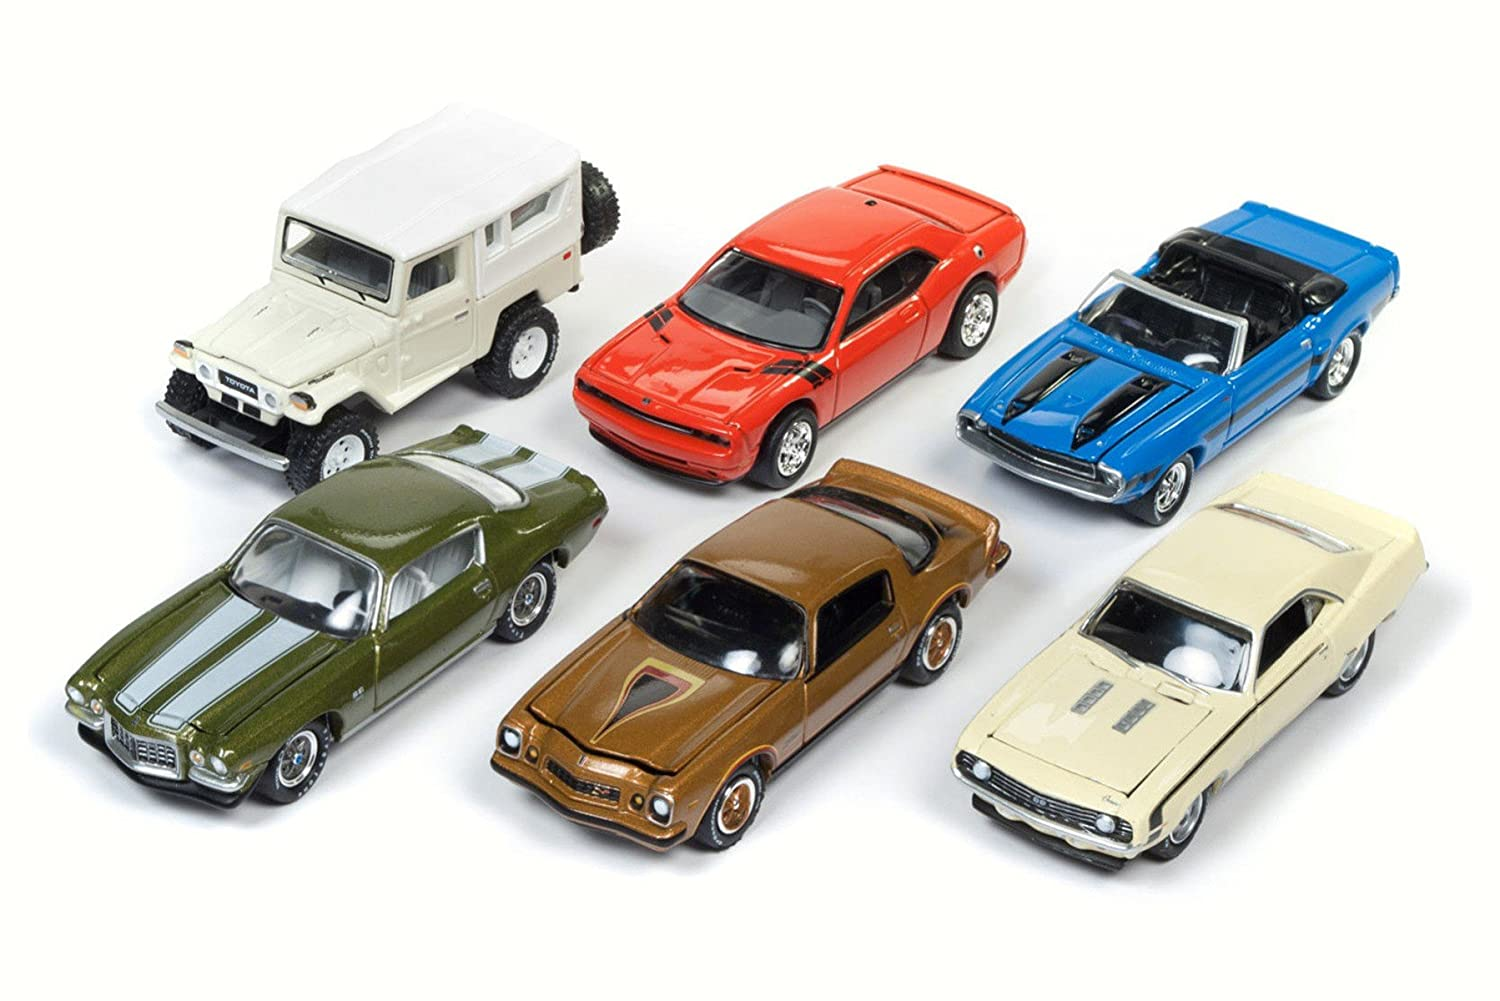 Amazon.com: Round 2 Johnny Lightning - Classic Gold 2017 Release 4 Set A Diecast Car Package - Box of 6 Assorted 1/64 Scale Diecast Model Cars: Toys & Games